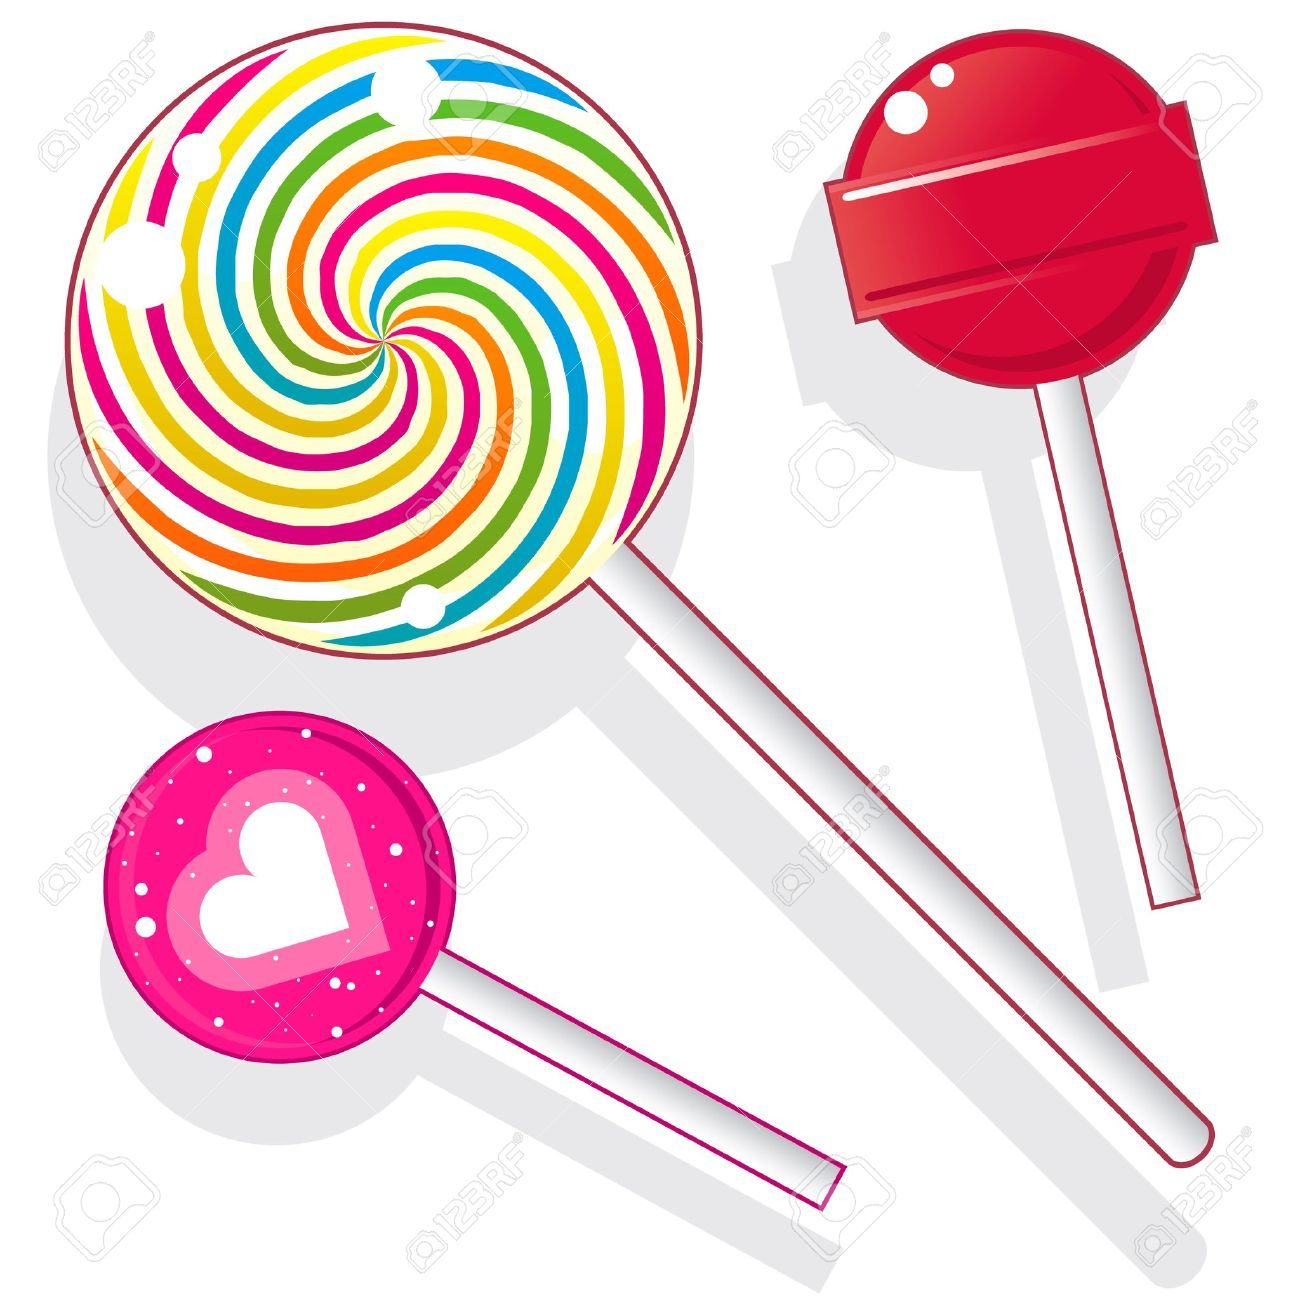 Lollipops and suckers. Vector candy set includes spherical lolly pops as well as round swirl pop. - 11575015